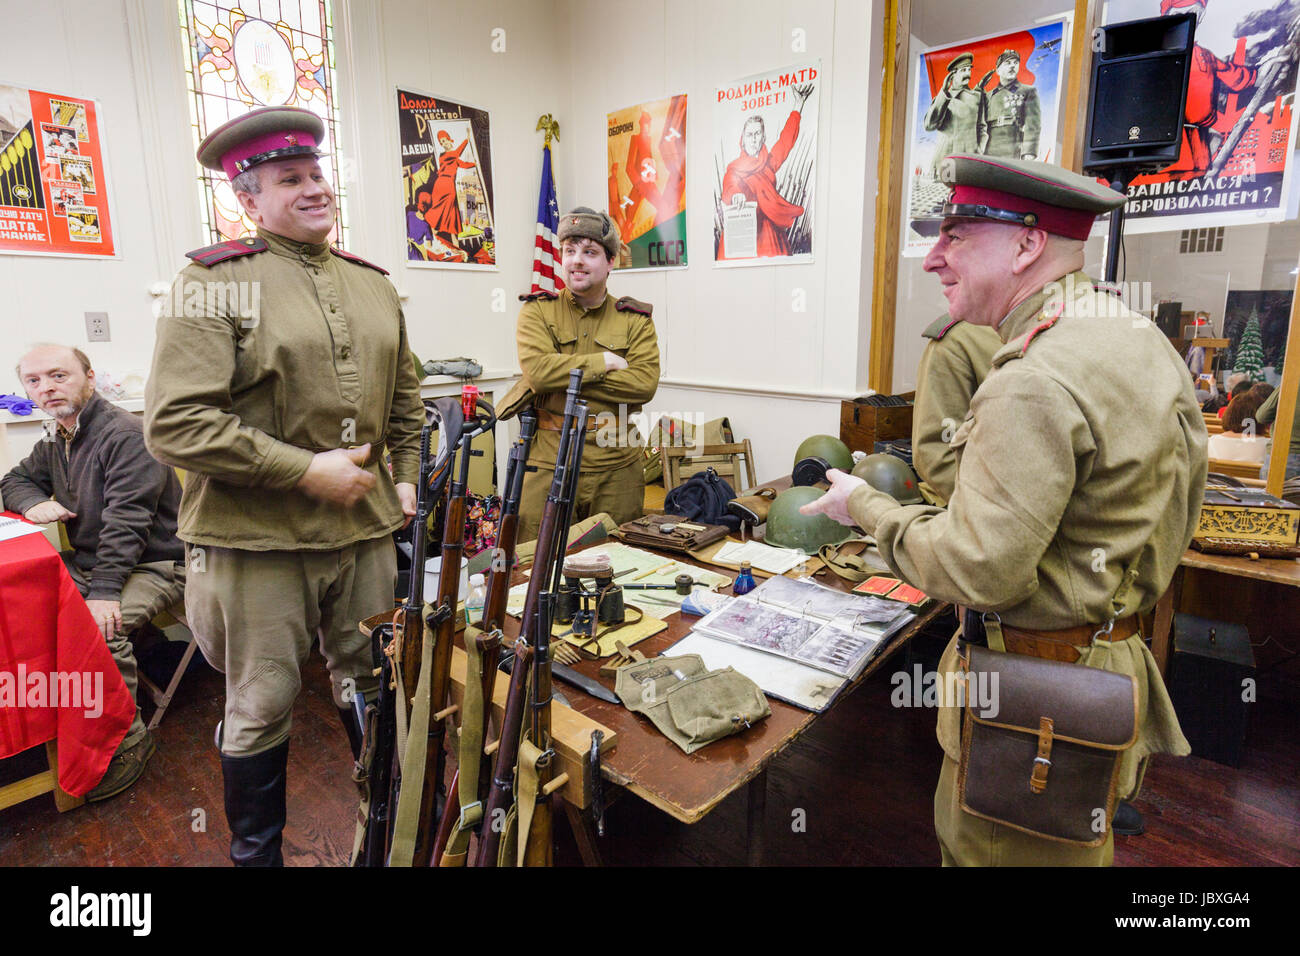 TROY, NEW YORK/USA - FEB 25 2017: Men dress as soldiers at annual Russian Festival - Stock Image